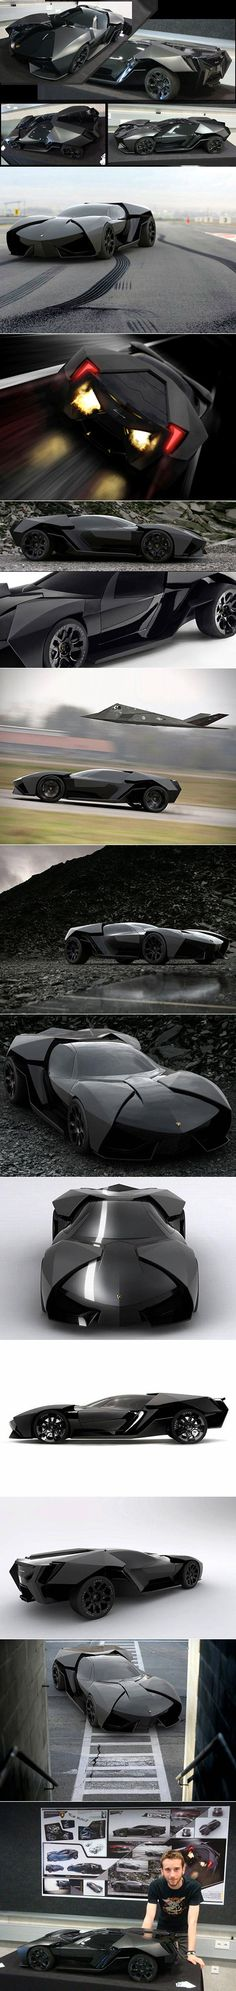 Sure, you could just pick up a matte black Lamborghini Aventador to get the Batmobile look, but what if the company actually released a model inspired by the actual movie vehicle? It would probably look something like the Lamborghini Ankonian, which was designed by Munich University student Slavche Tanevsky.